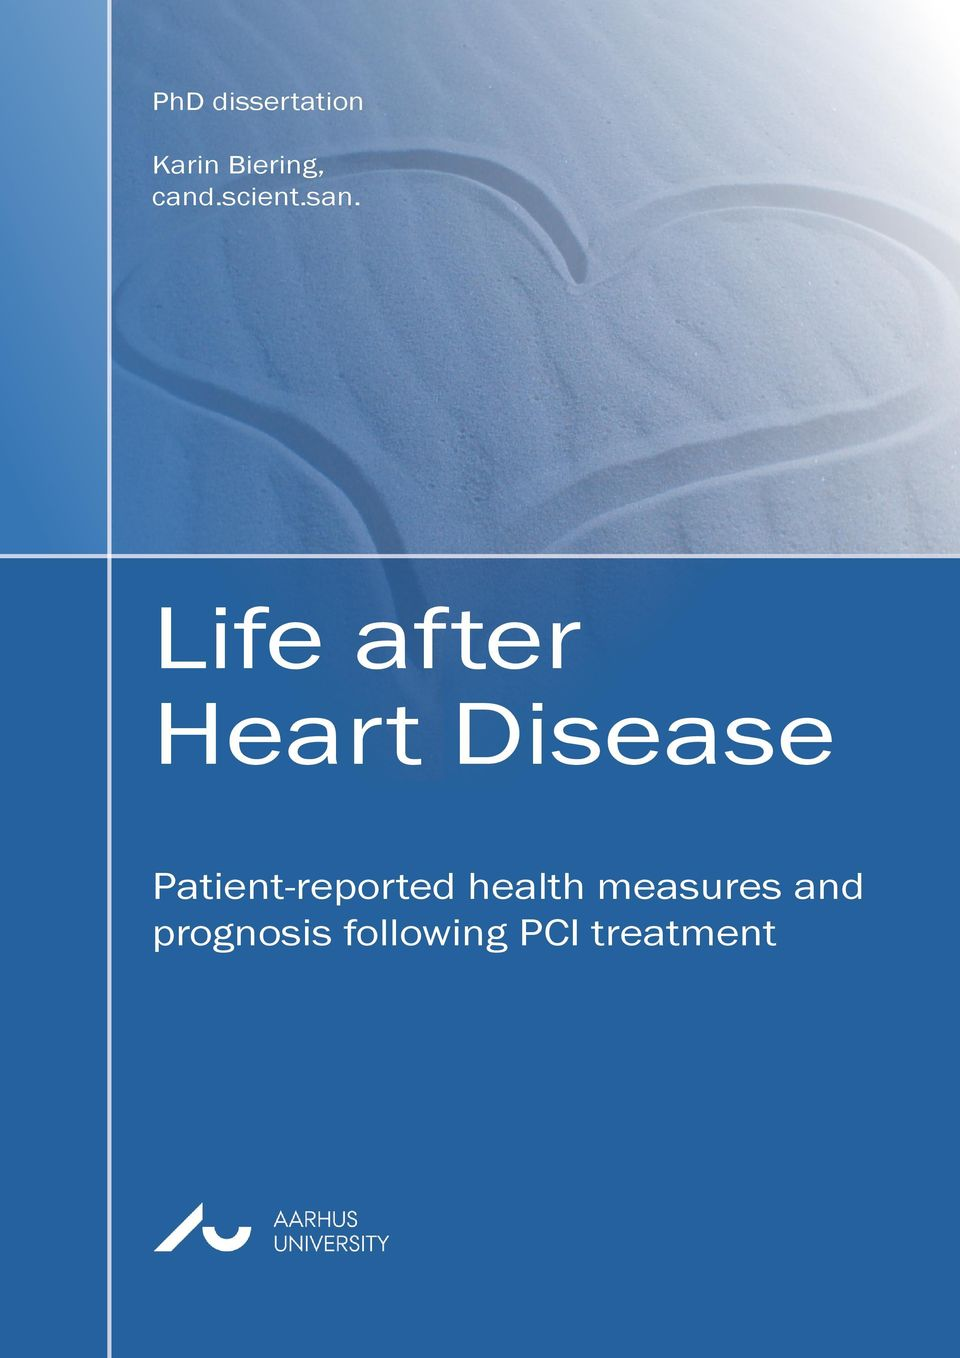 Life after Heart Disease